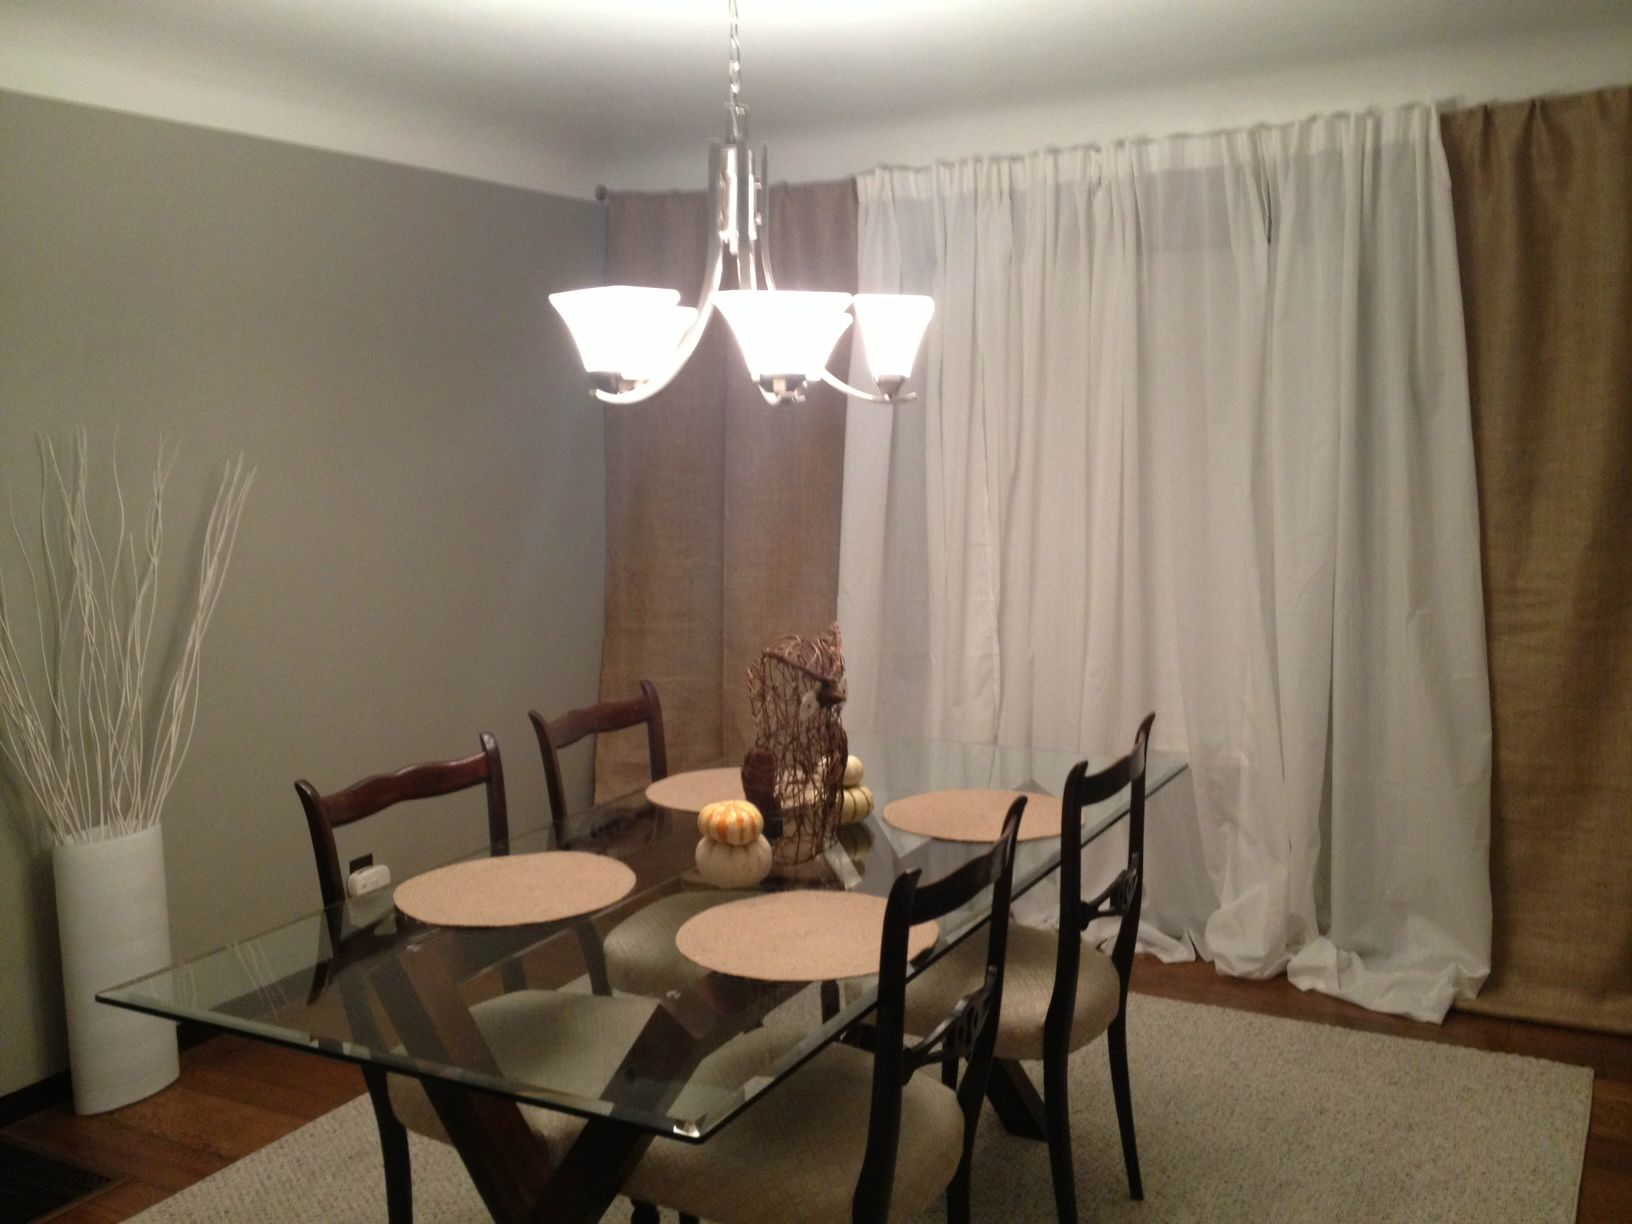 Our Dining Room With My Homemade Burlap Curtains I Purchased